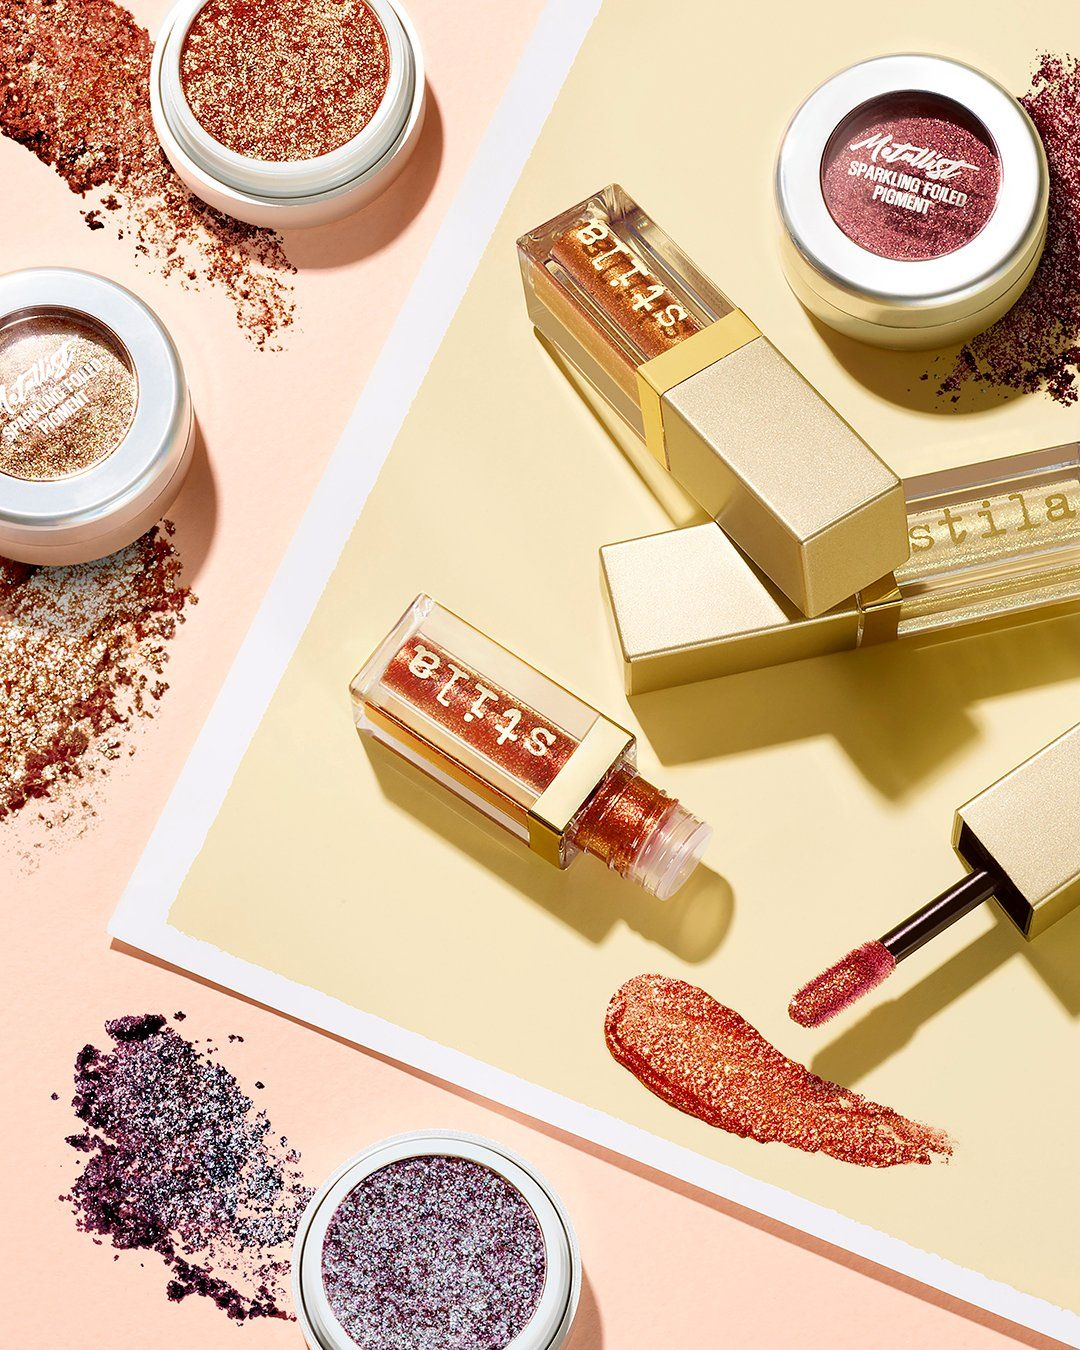 Stila All Fired Up : stila, fired, Apply, Stila, Cosmetics', Fired, High-impact,, Glittery, Looks., Starry-eyed, Sparkle, To…, Cosmetics,, Makeup, Collection,